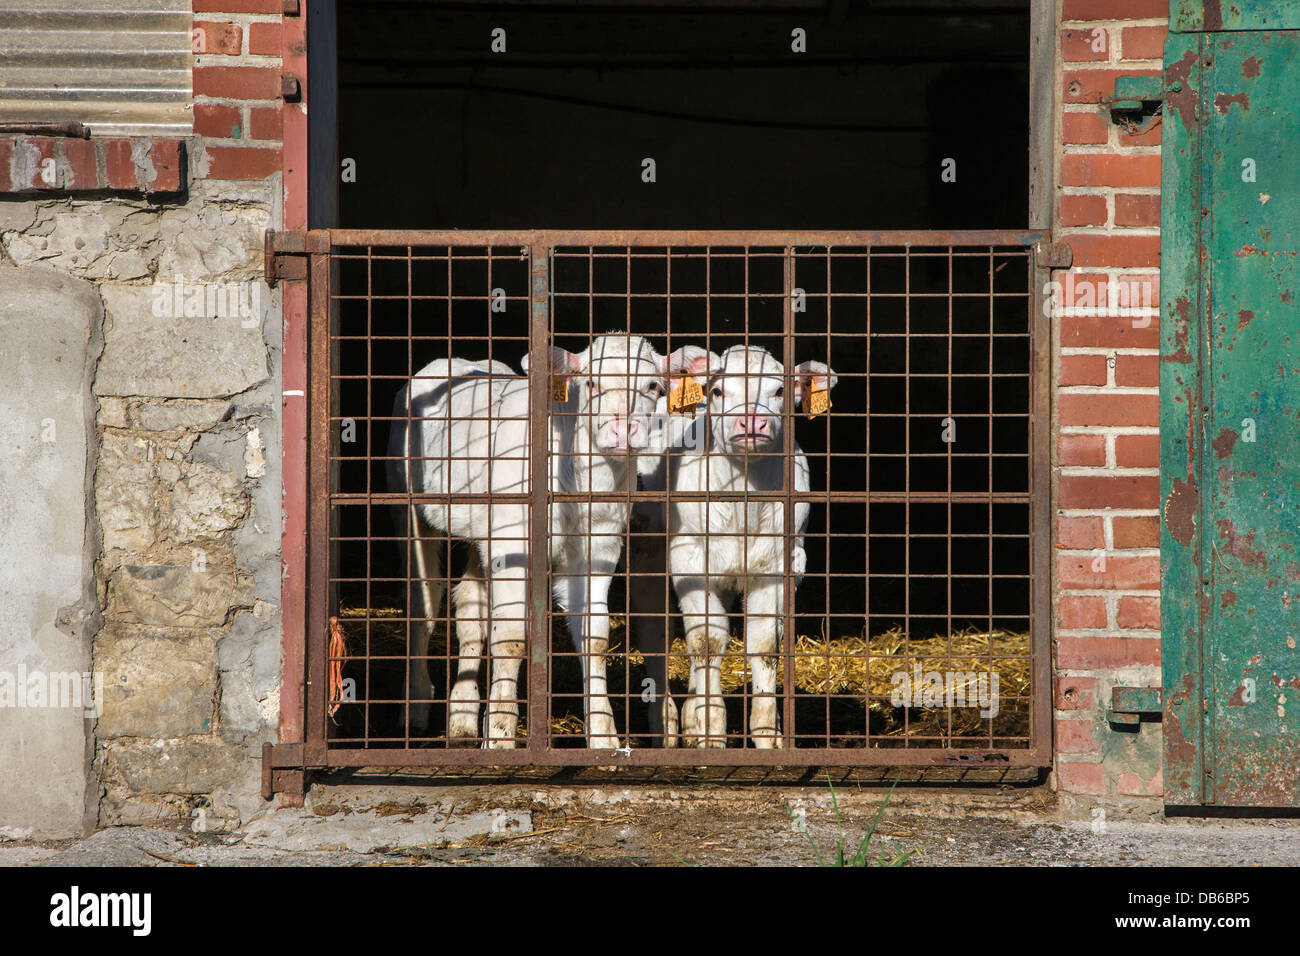 Two curious white calves tagged with earmarks in cow shed at dairy farm - Stock Image